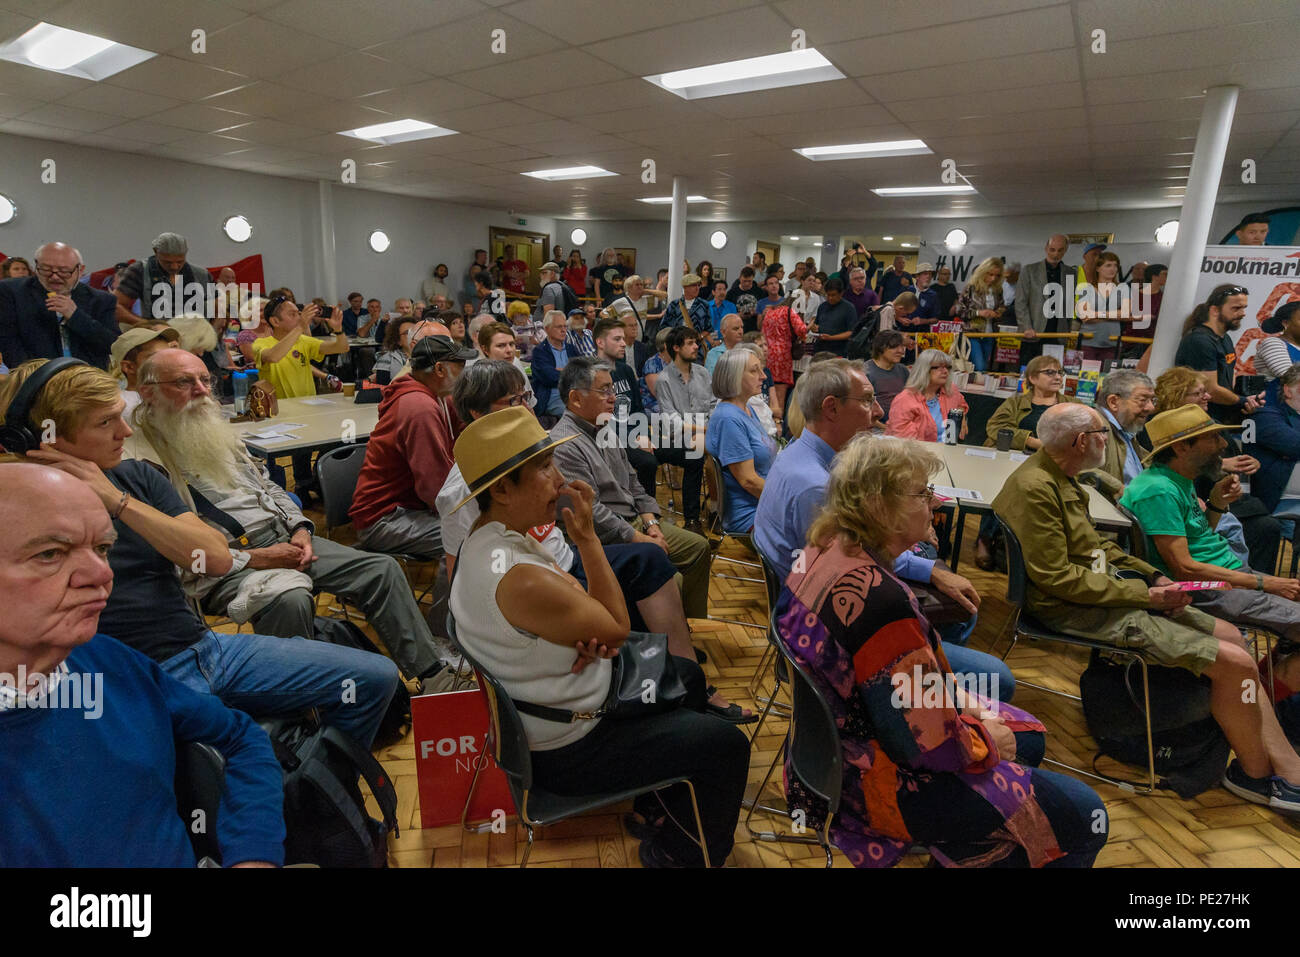 London, UK. 11th August 2018. 11th August 2018. The basement of a nearby church begins to fill up as several hundred people from all parts of the labour movement come to show solidarity and support the Bookmarks socialist bookshop a week after a group of Nazi thugs from 'Make Britain Great Again' invaded the shop in central London, shouting racist slogans and wrecking book displays. Credit: ZUMA Press, Inc./Alamy Live News - Stock Image